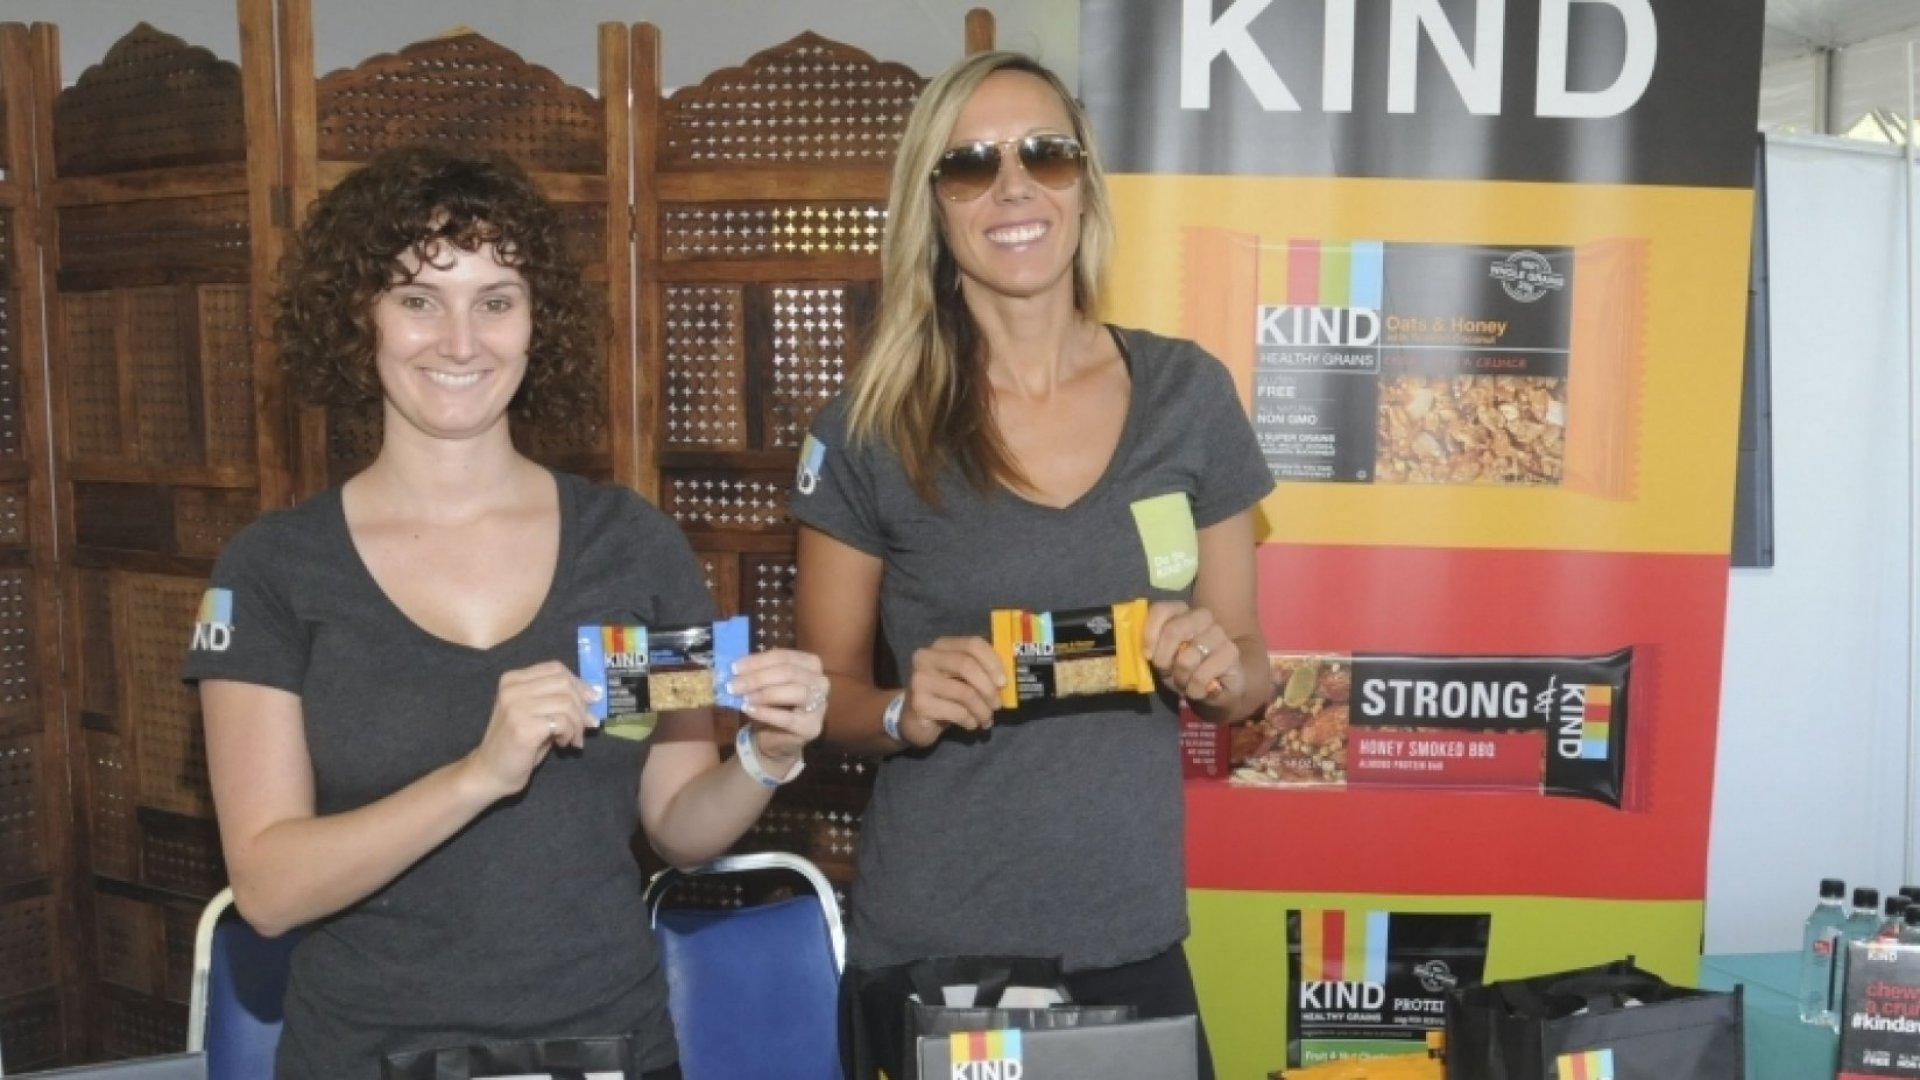 KIND Bars: What to Do When the FDA Says You're Nuts